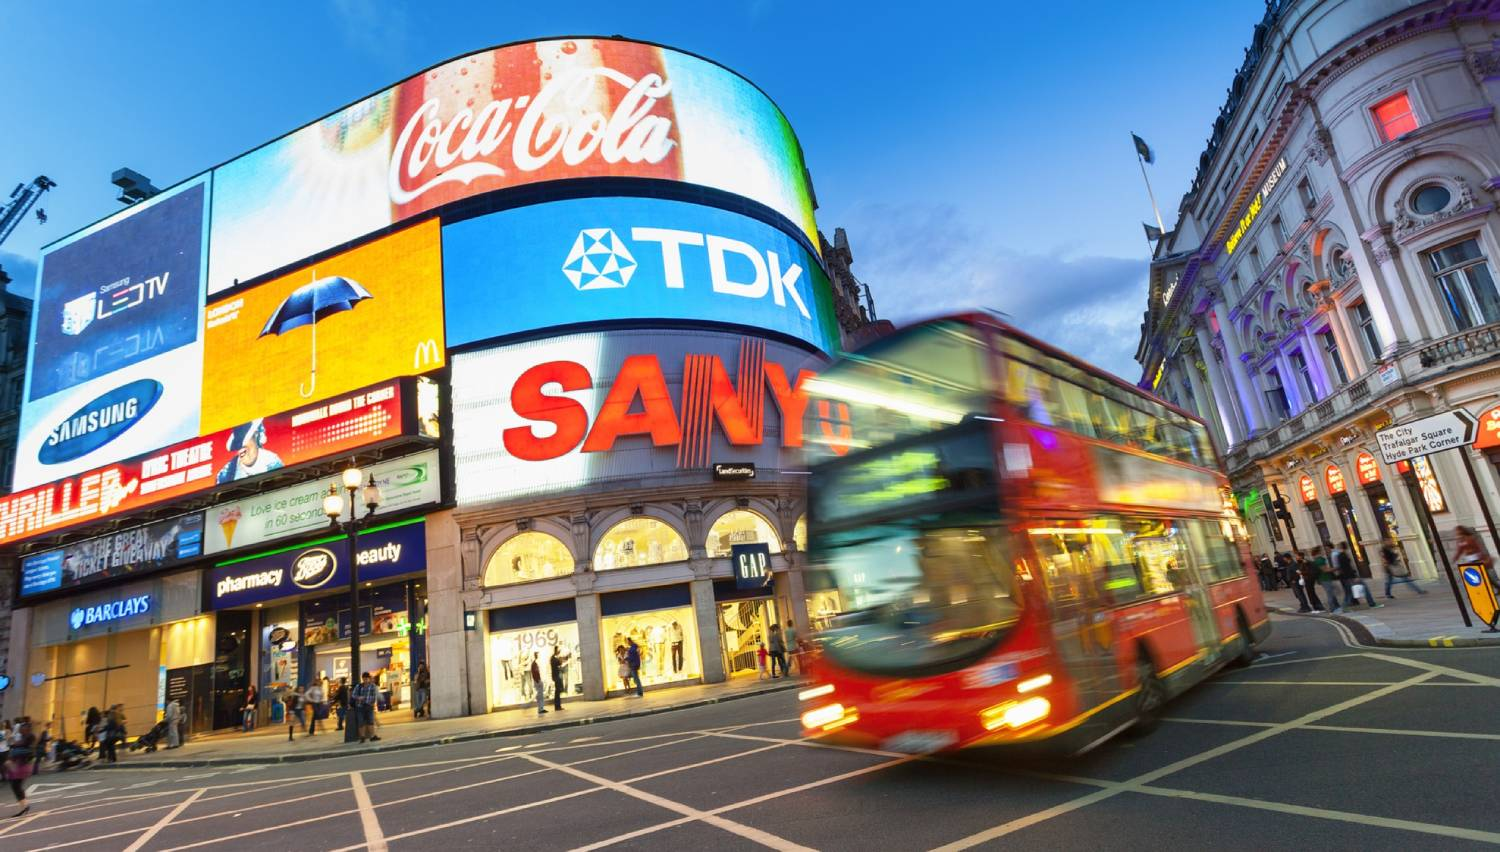 Piccadilly Circus - Things To Do In London